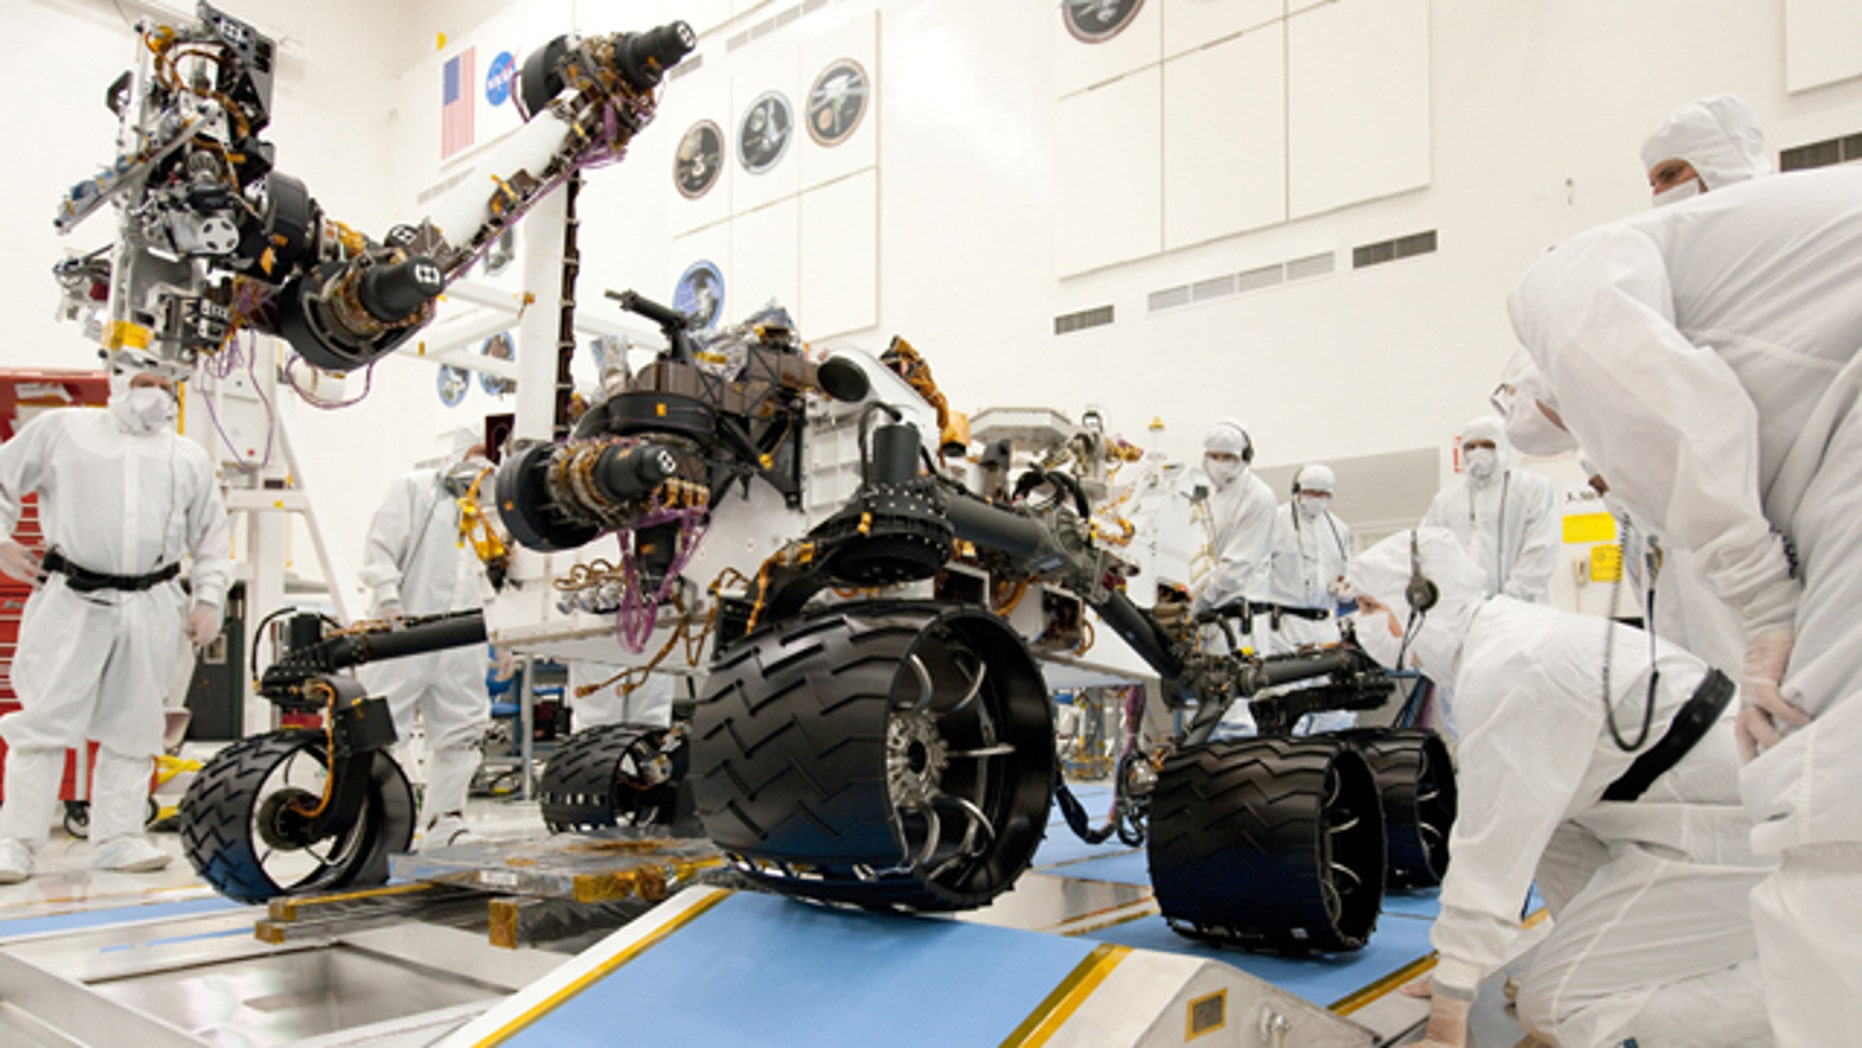 Technicians working on the new Mars rover, Curiosity. Nine months before Curiosity's scheduled launch, the space agency says the mission has burned through its reserves and needs an extra $82 million to complete testing before liftoff.